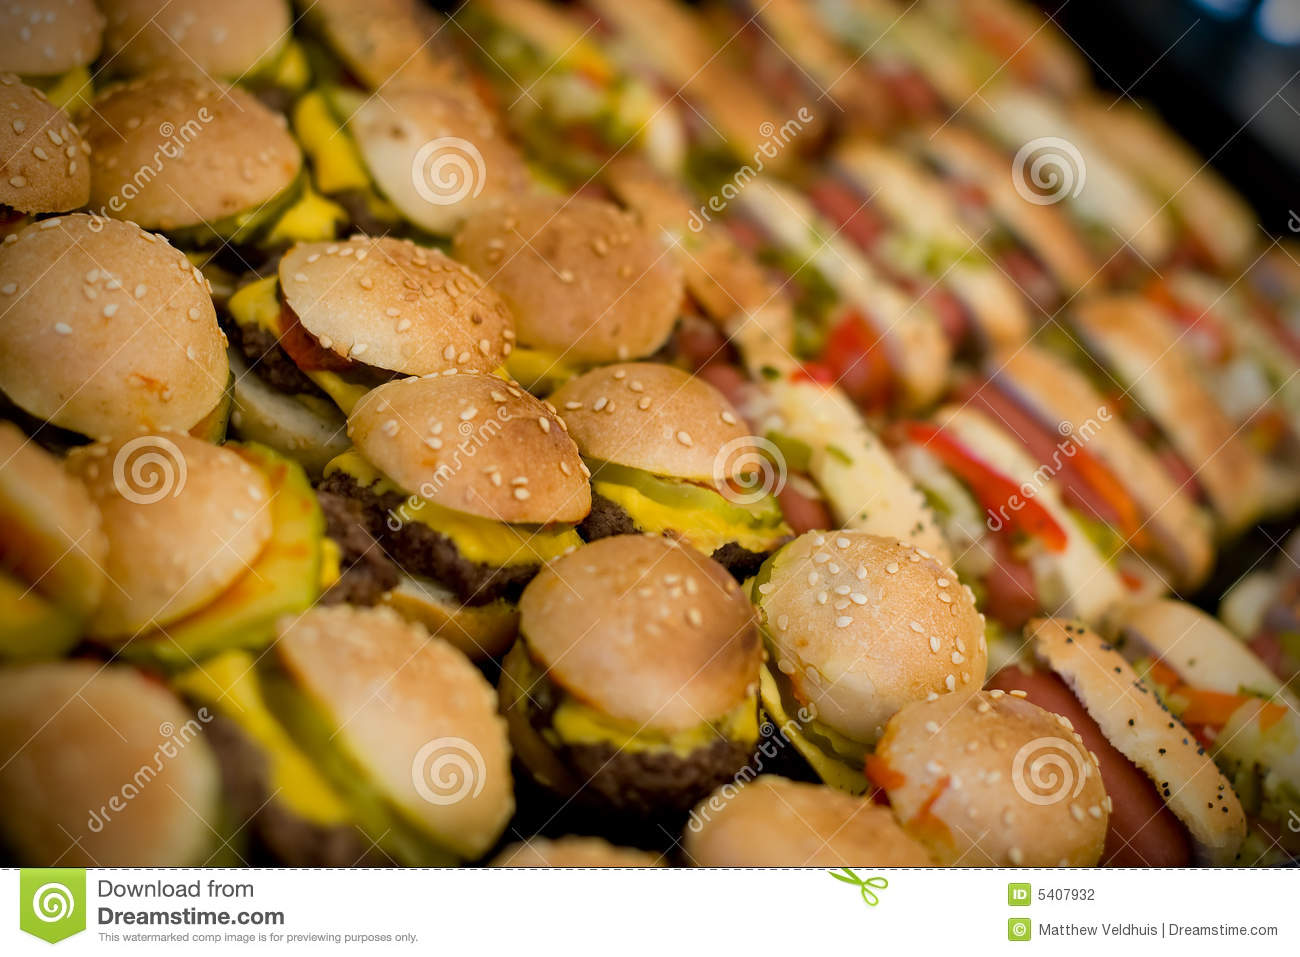 Mini hamburgers et hot dogs